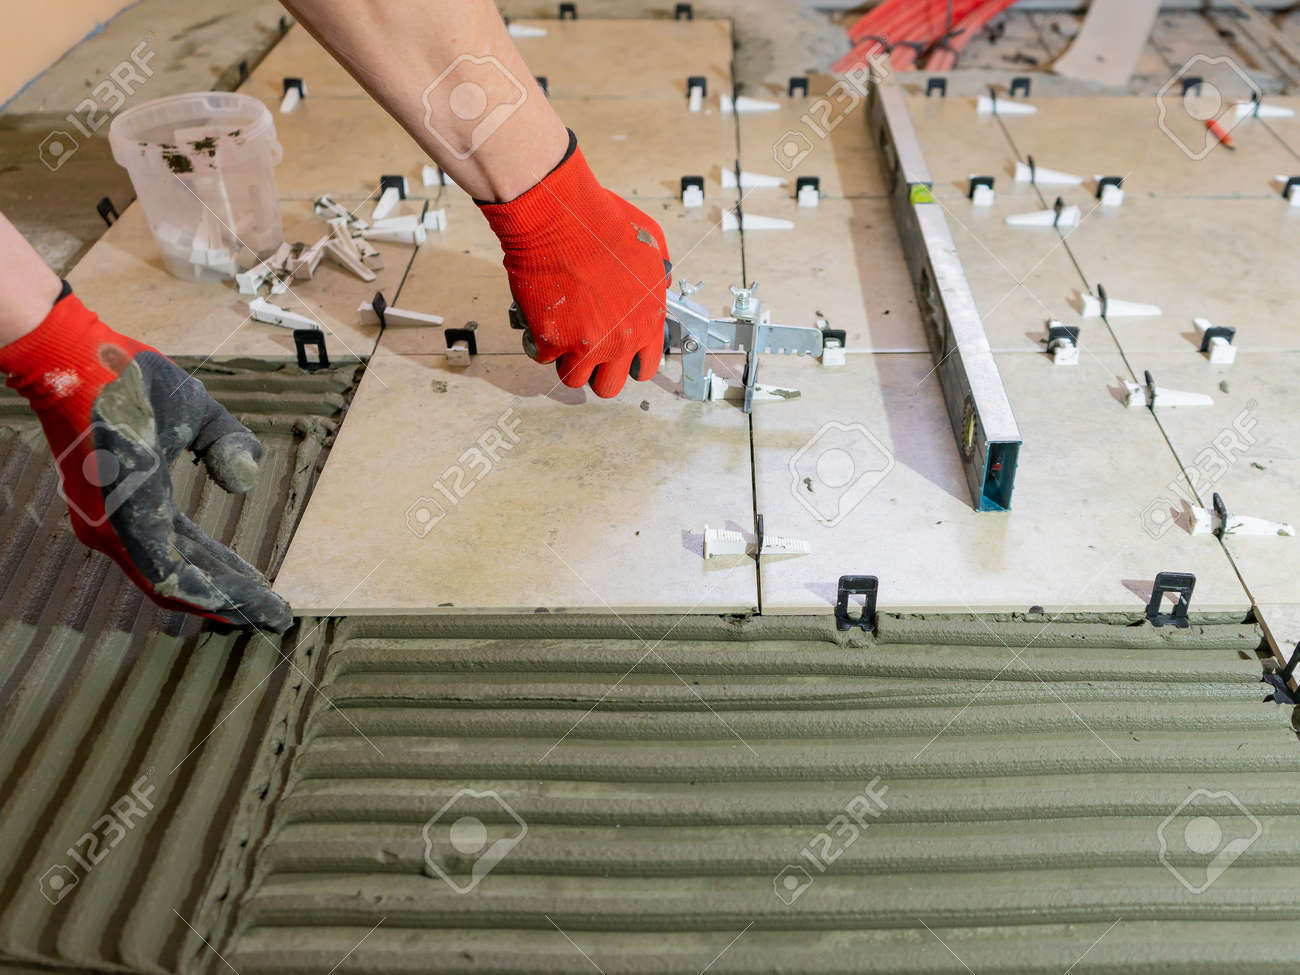 A worker is leveling the ceramic tile with wedges and clips. Tile leveling system - 171995161